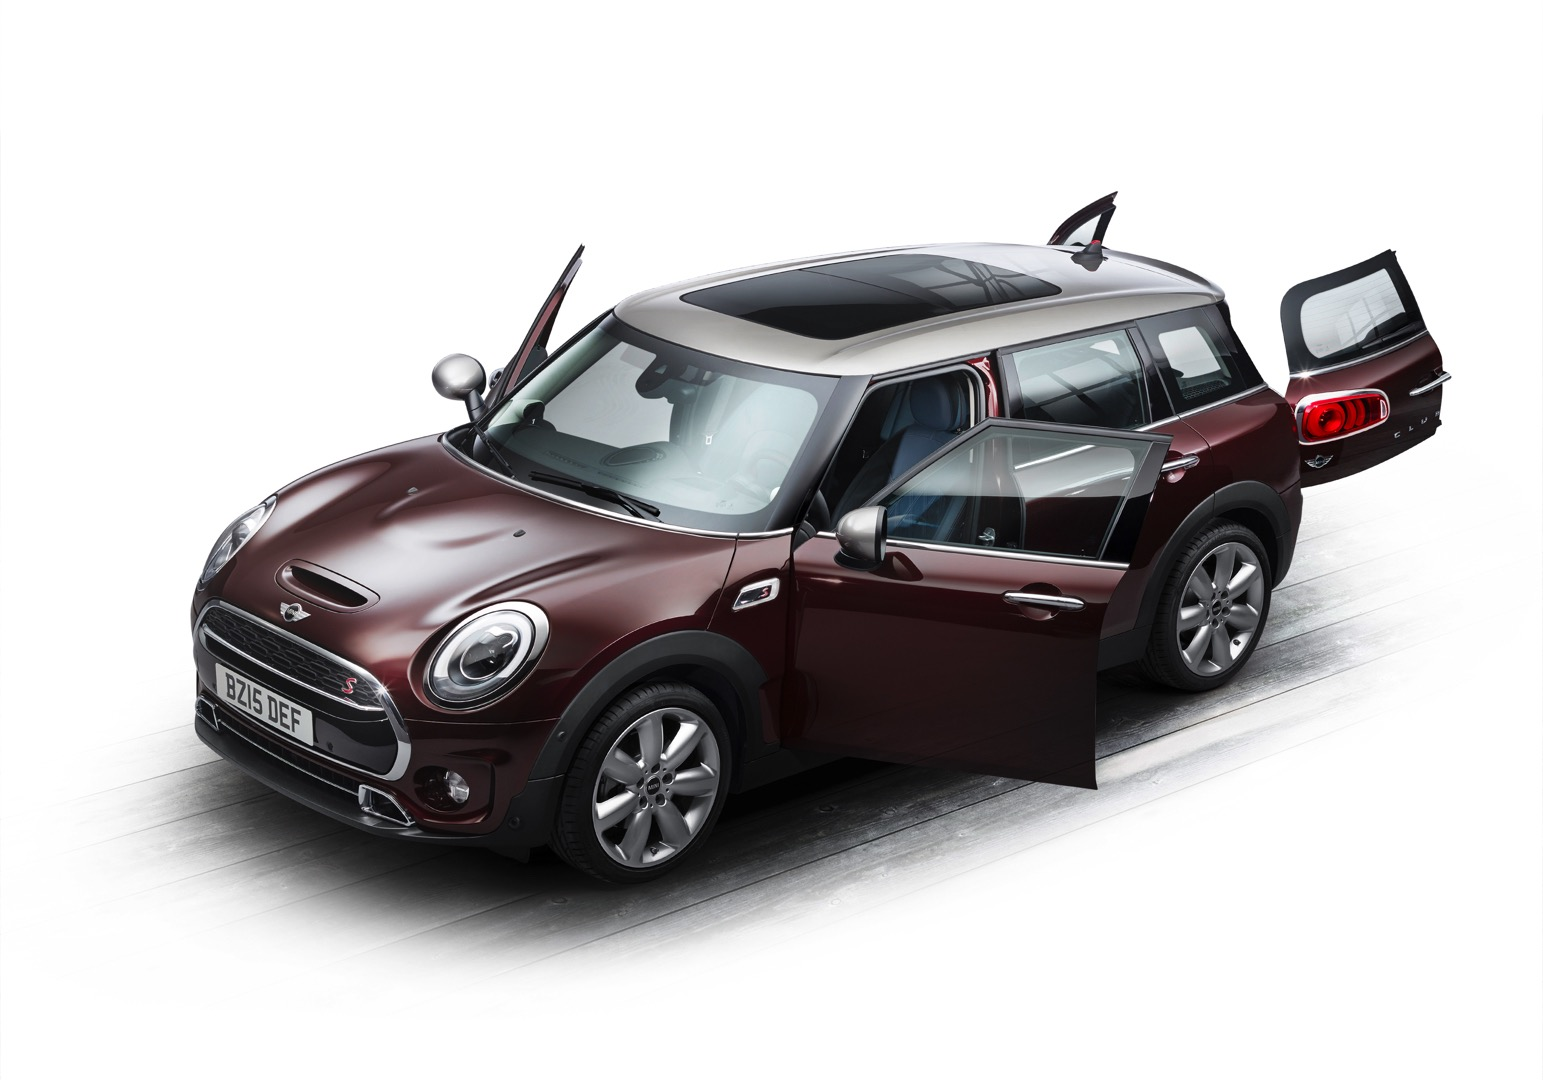 2016 Mini Clubman Unveiled Entering The Premium Compact Segment